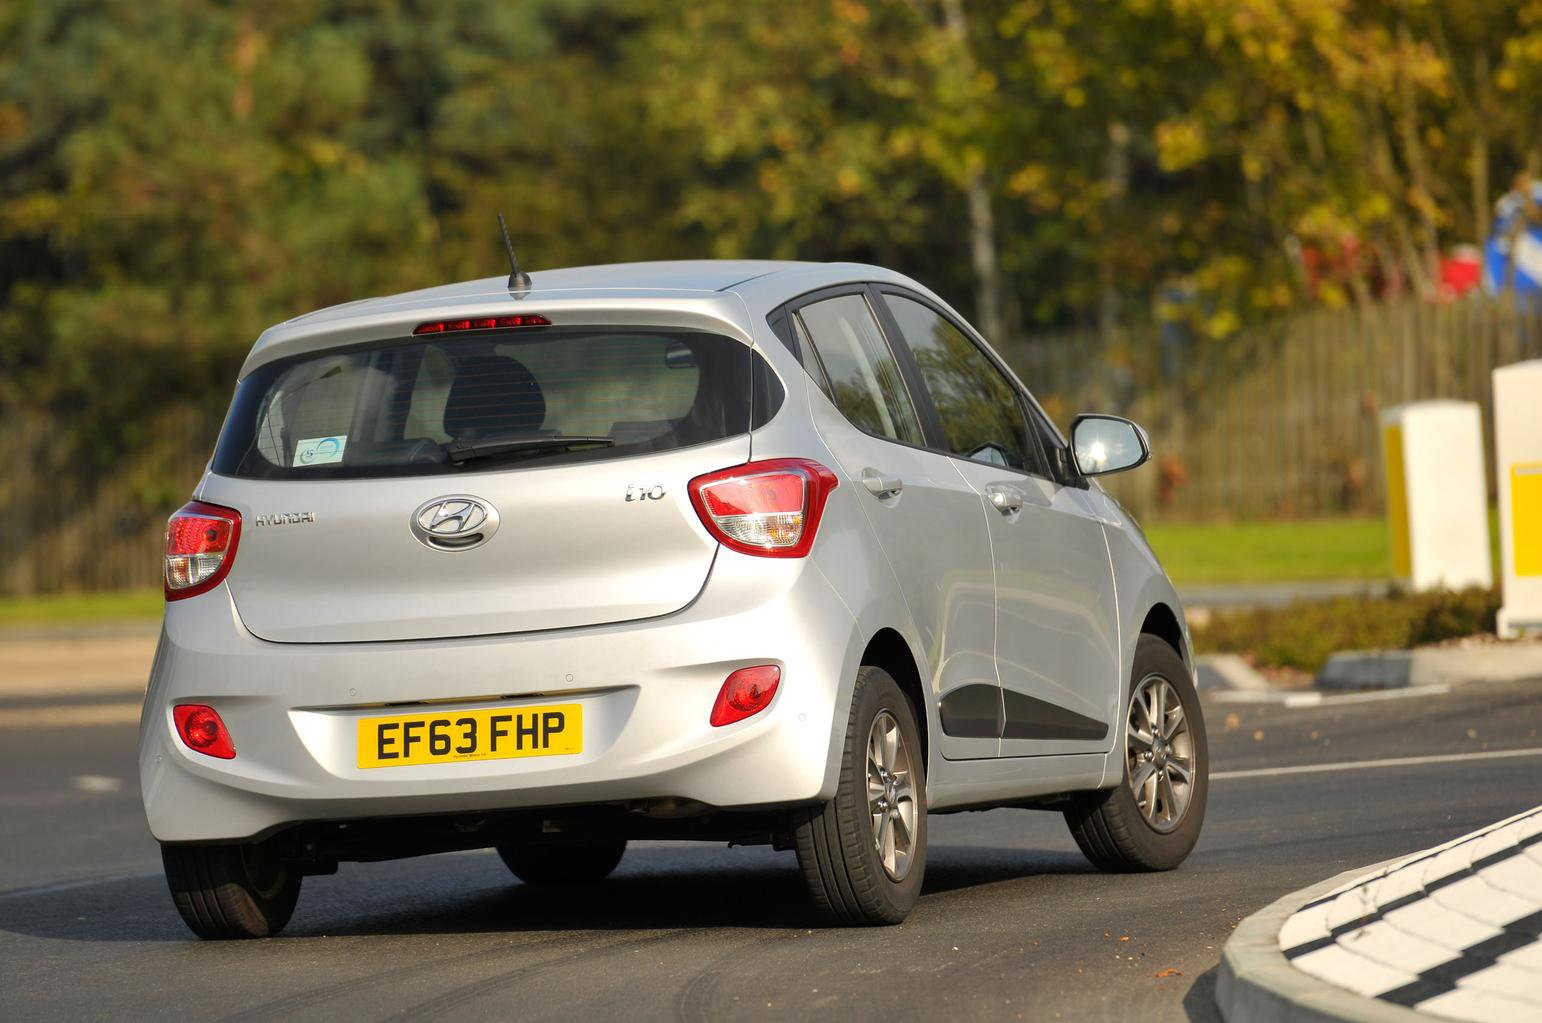 Deal of the day: Hyundai i10